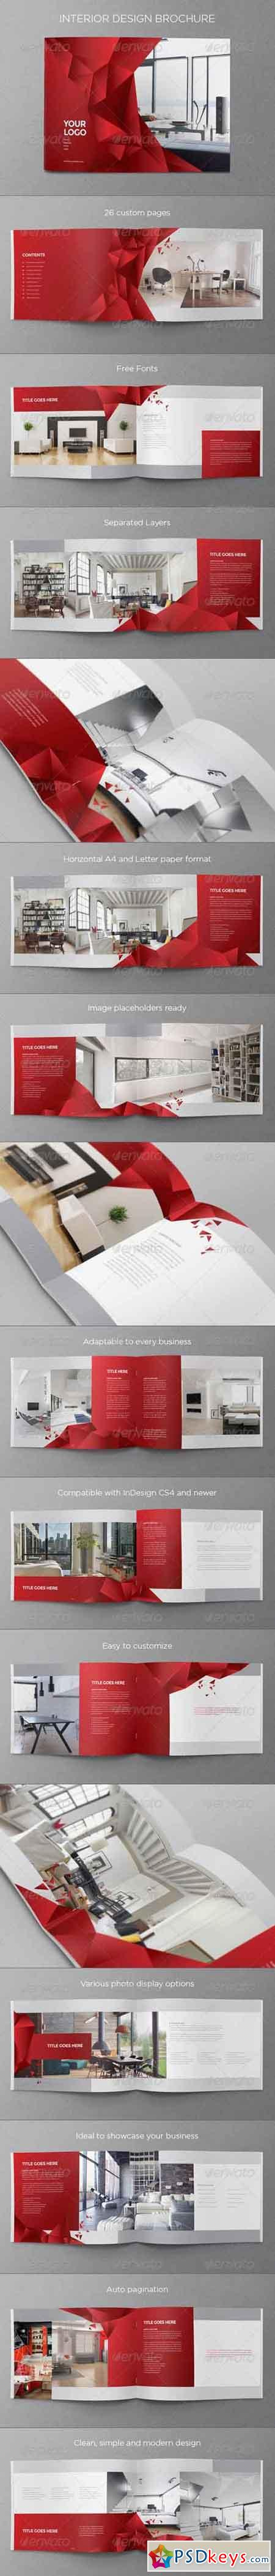 Interior Design Brochure 6913774